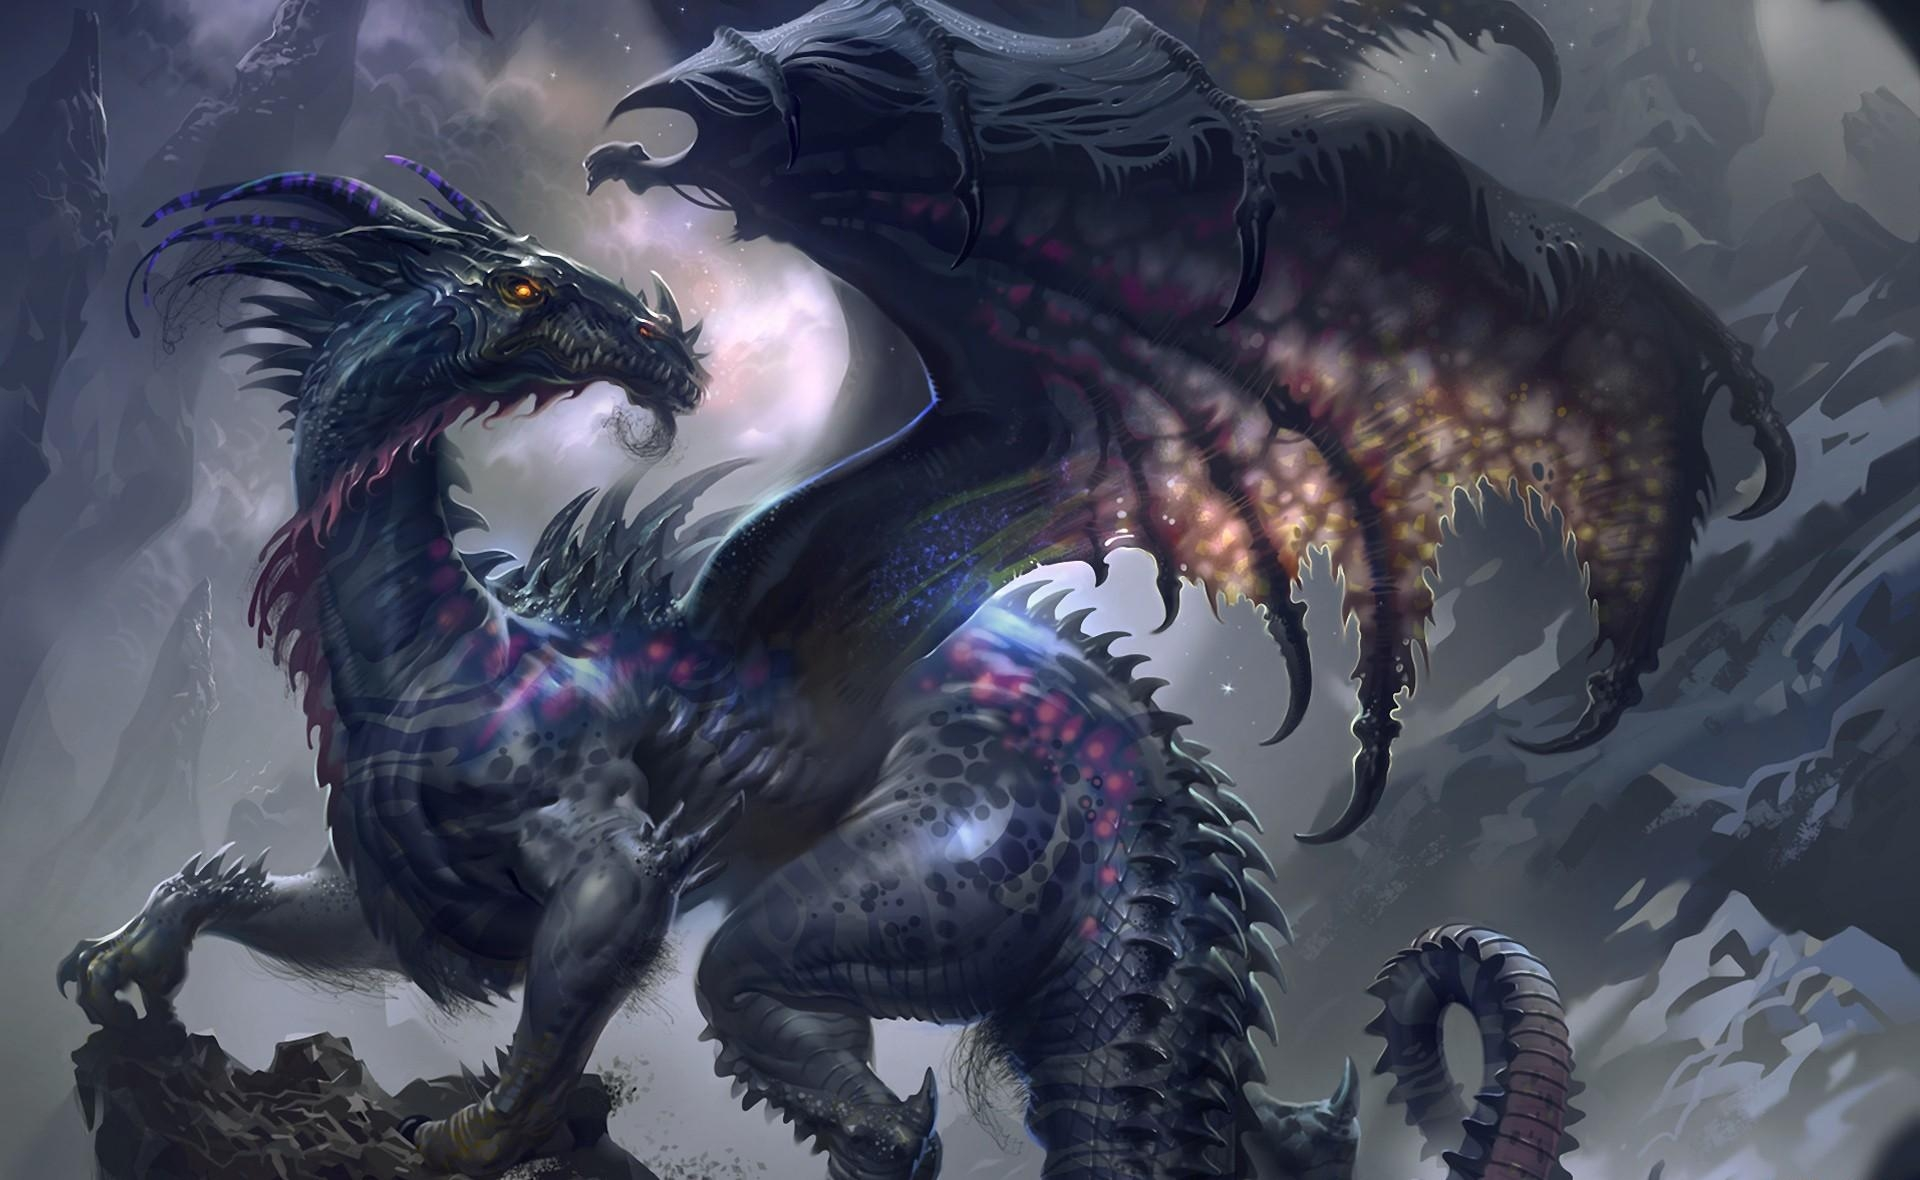 73647 download wallpaper Fantasy, Dragon, Wings, Profile, Rocks screensavers and pictures for free